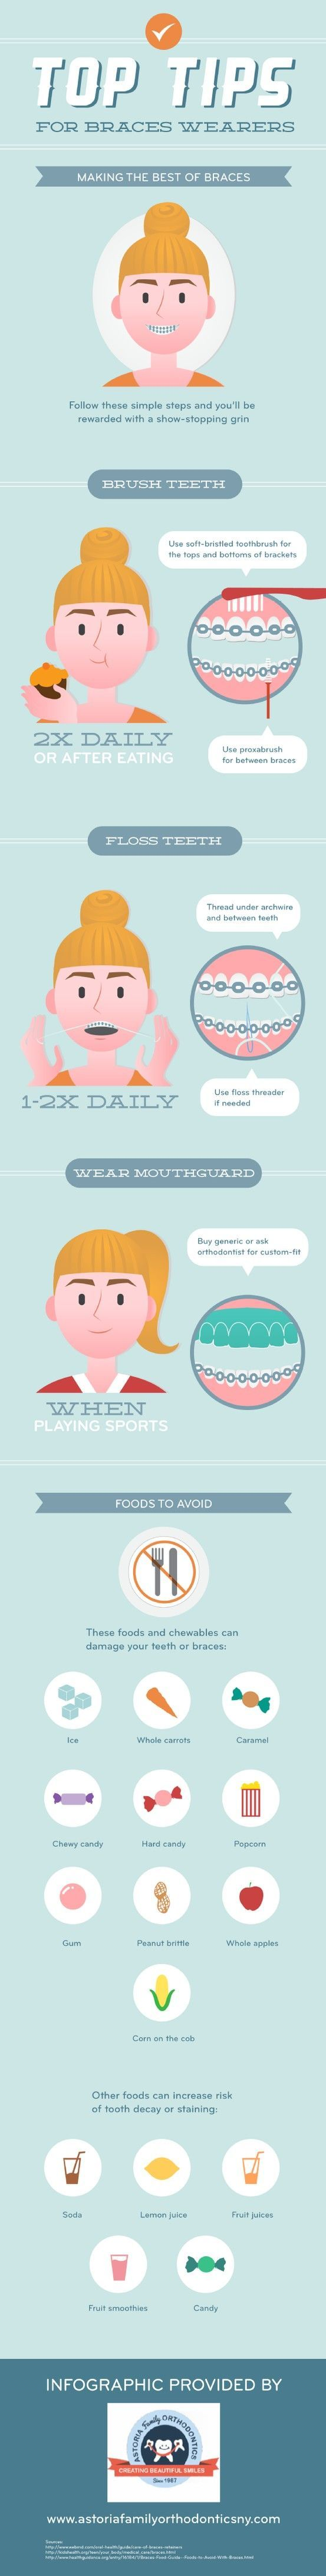 When you have braces, it is important to floss your teeth once or twice a day. Pay attention to the areas under the archwire and the space between your teeth. For more information on oral care, check out this infographic from Woodside's Astoria Family Orthodontics. Source: http://www.astoriafamilyorthodonticsny.com/670237/2013/03/26/top-tips-for-braces-wearers-infographic.html: